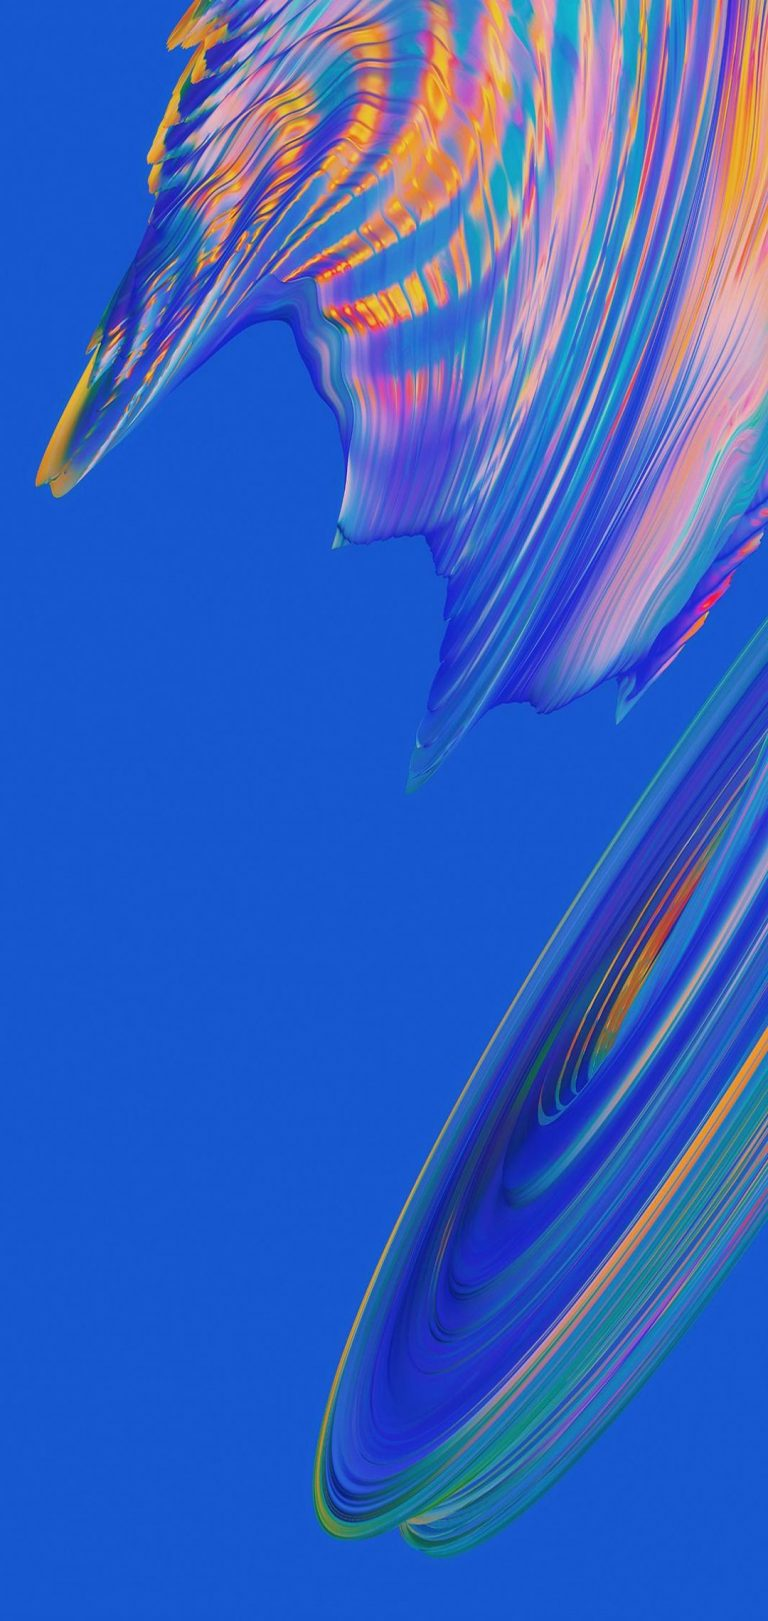 Paranoid Android 2019 Stock Wallpaper 04 1080x2280 768x1621